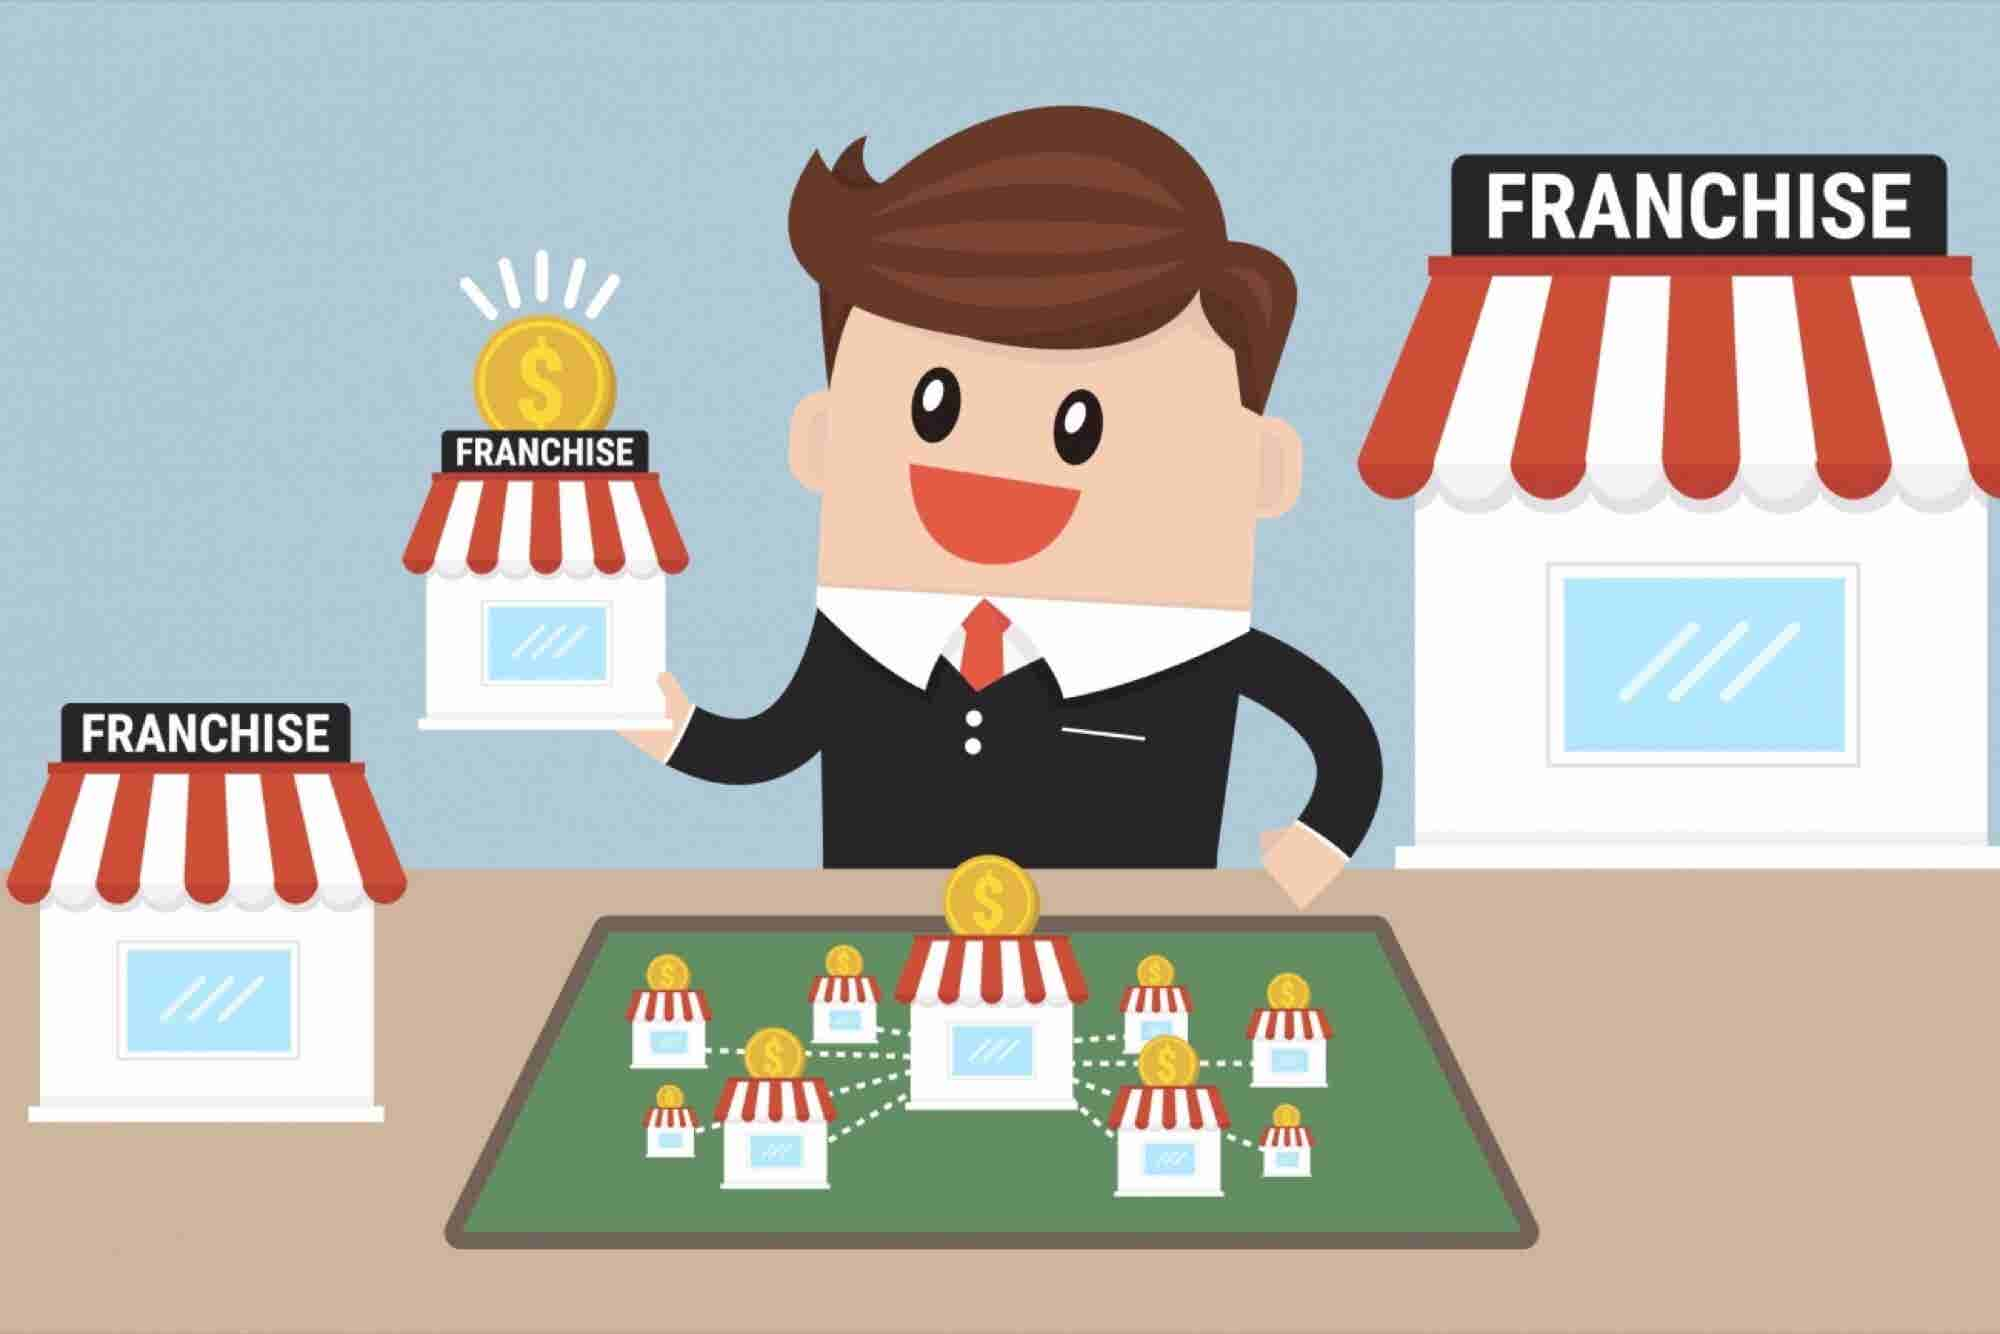 Here's How You Can Avoid Being a Victim of Franchise Fraud